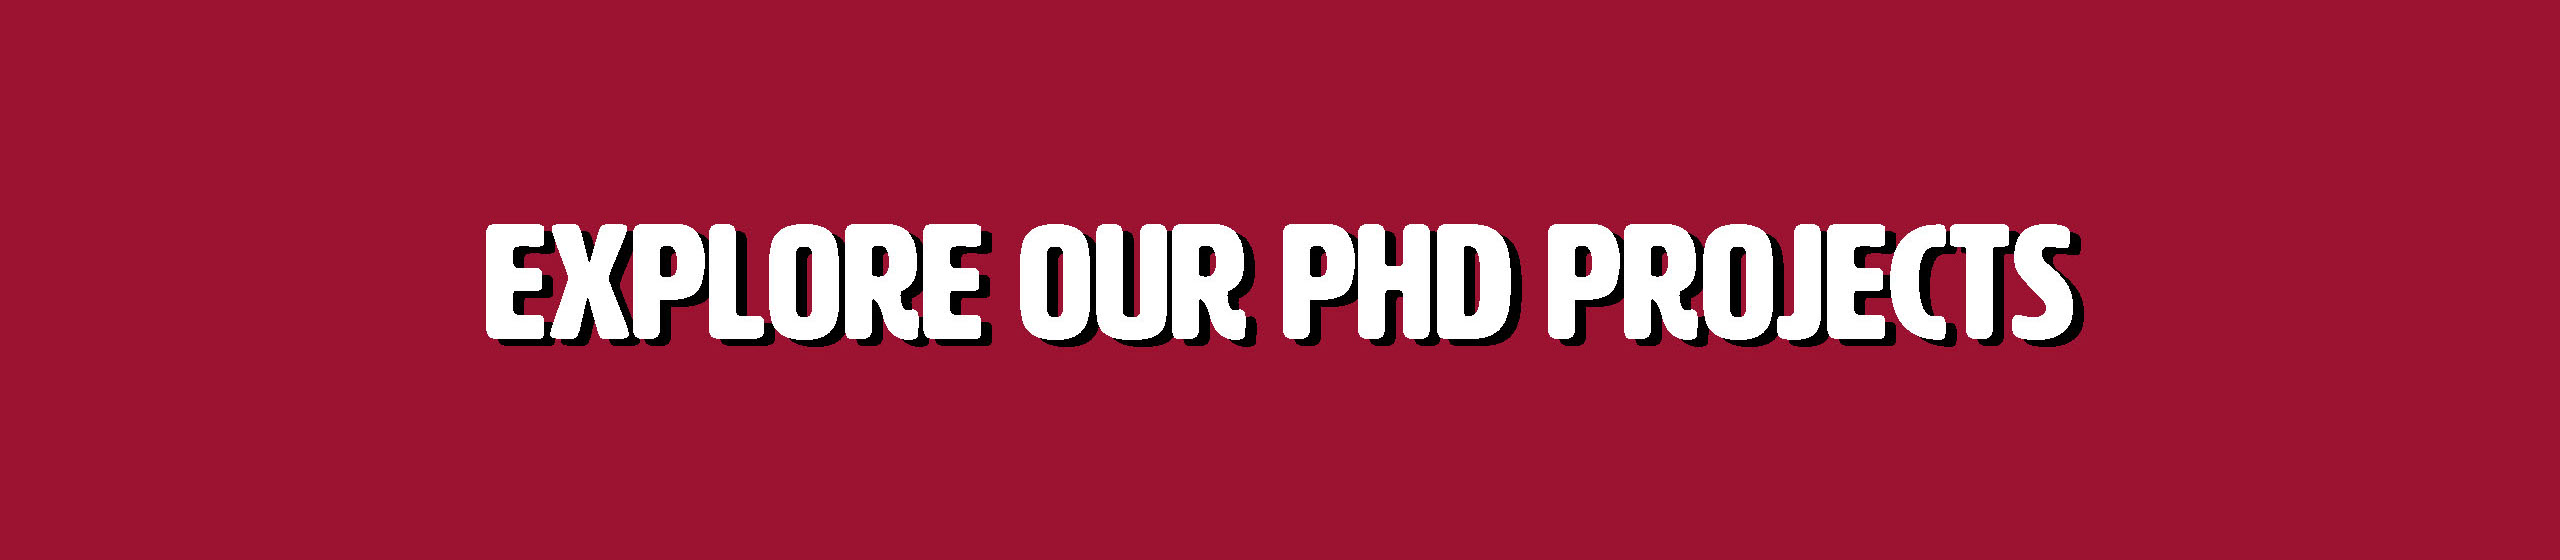 Click to explore our PhD projects